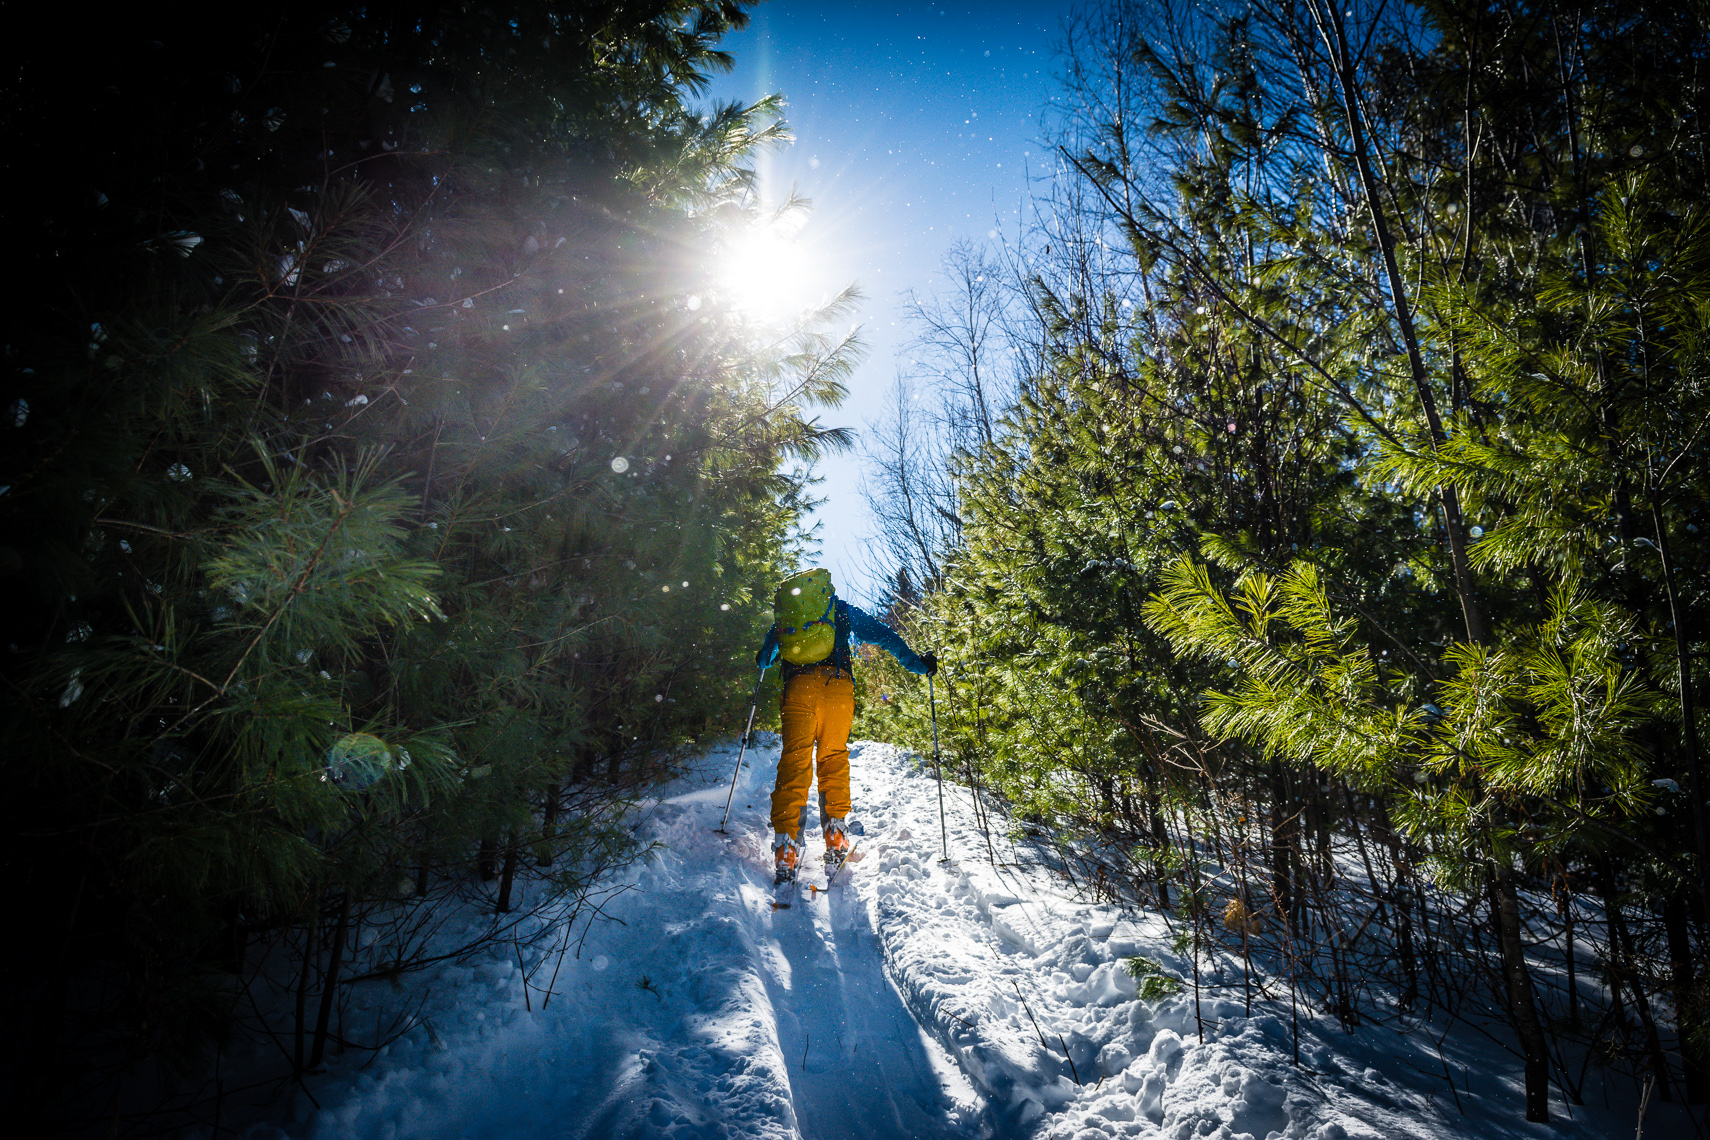 Backcountry Skiing Photography / New England Outdoor Lifestyle Photography